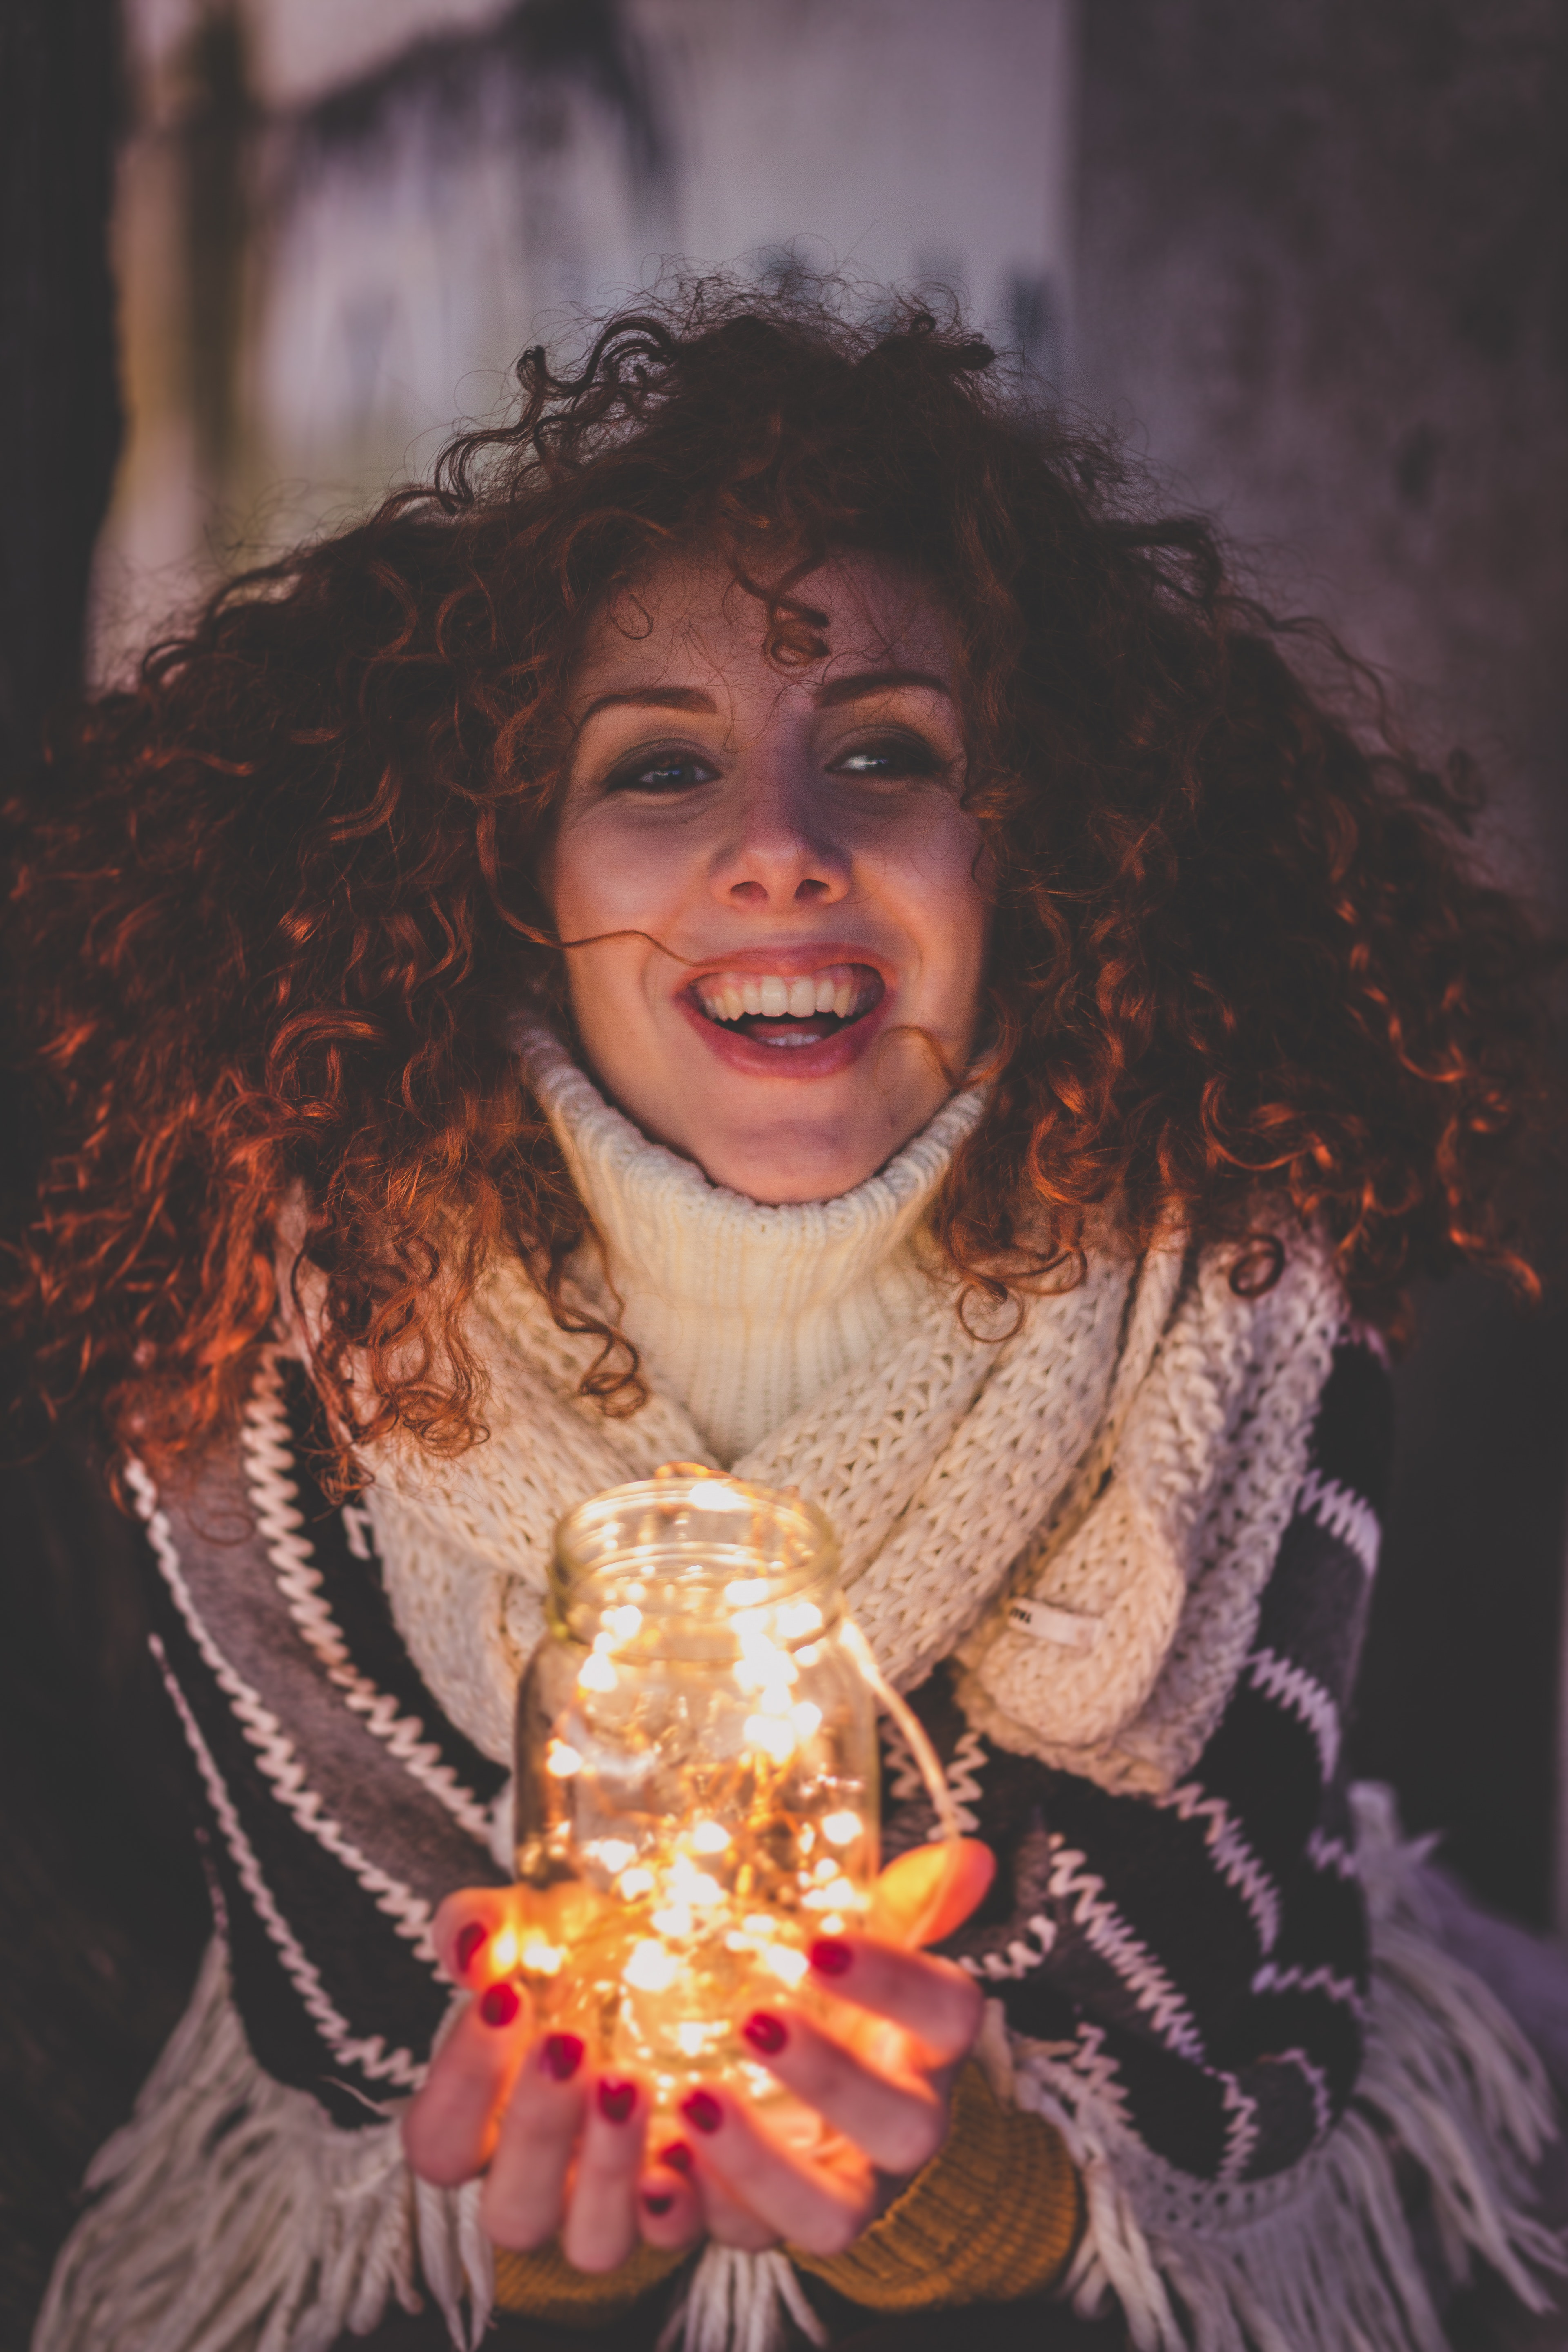 Woman holding a jar with string lights photo